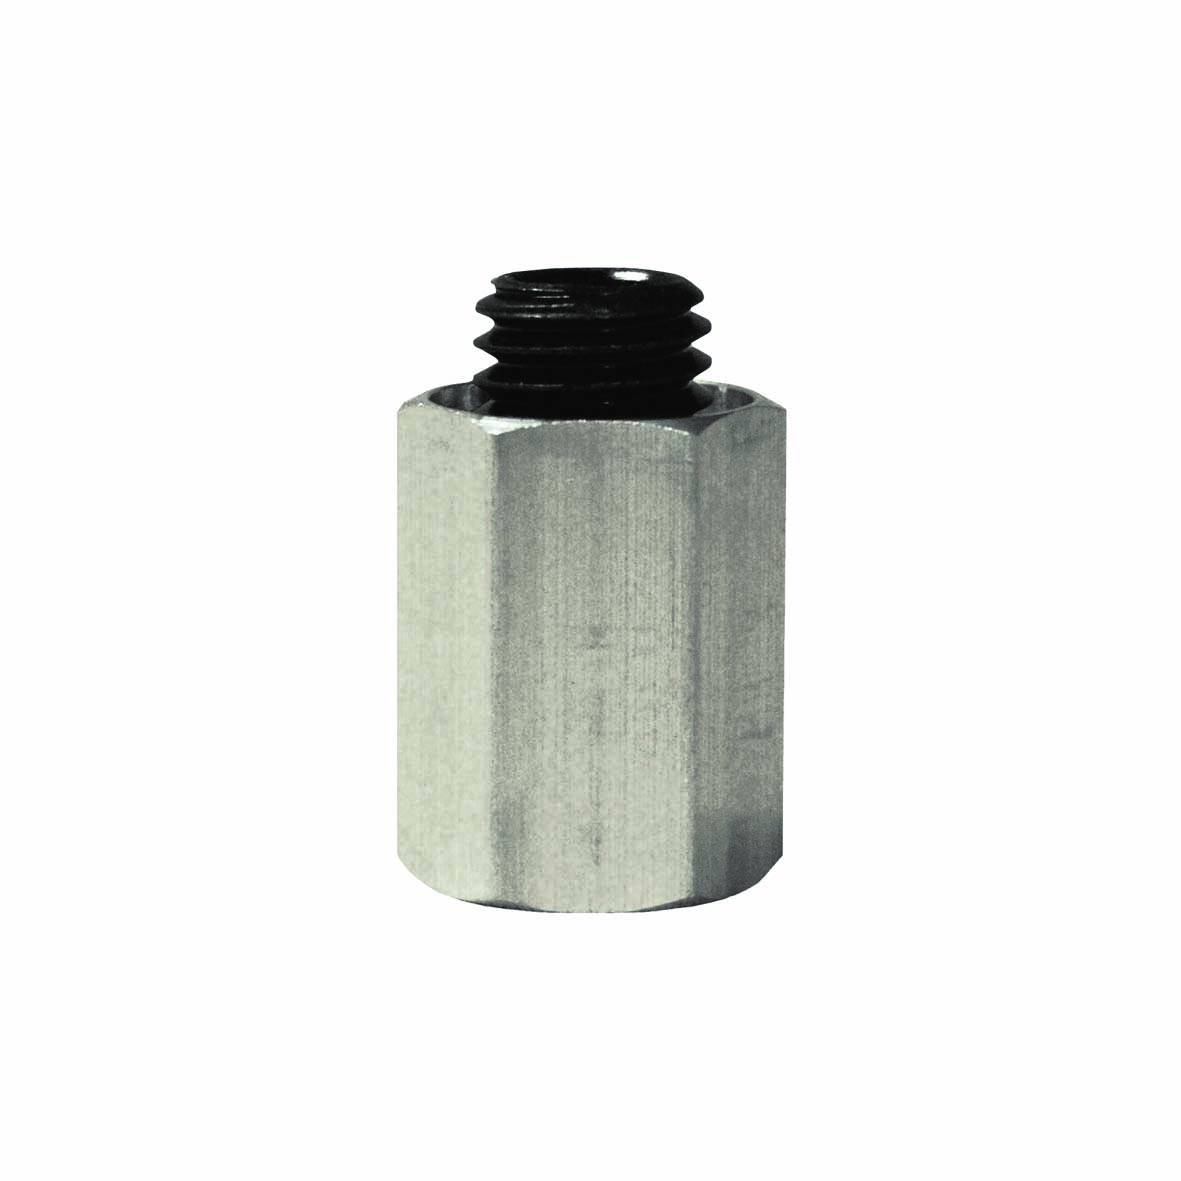 G Mop Bolt Adaptor for Double Sided Pads